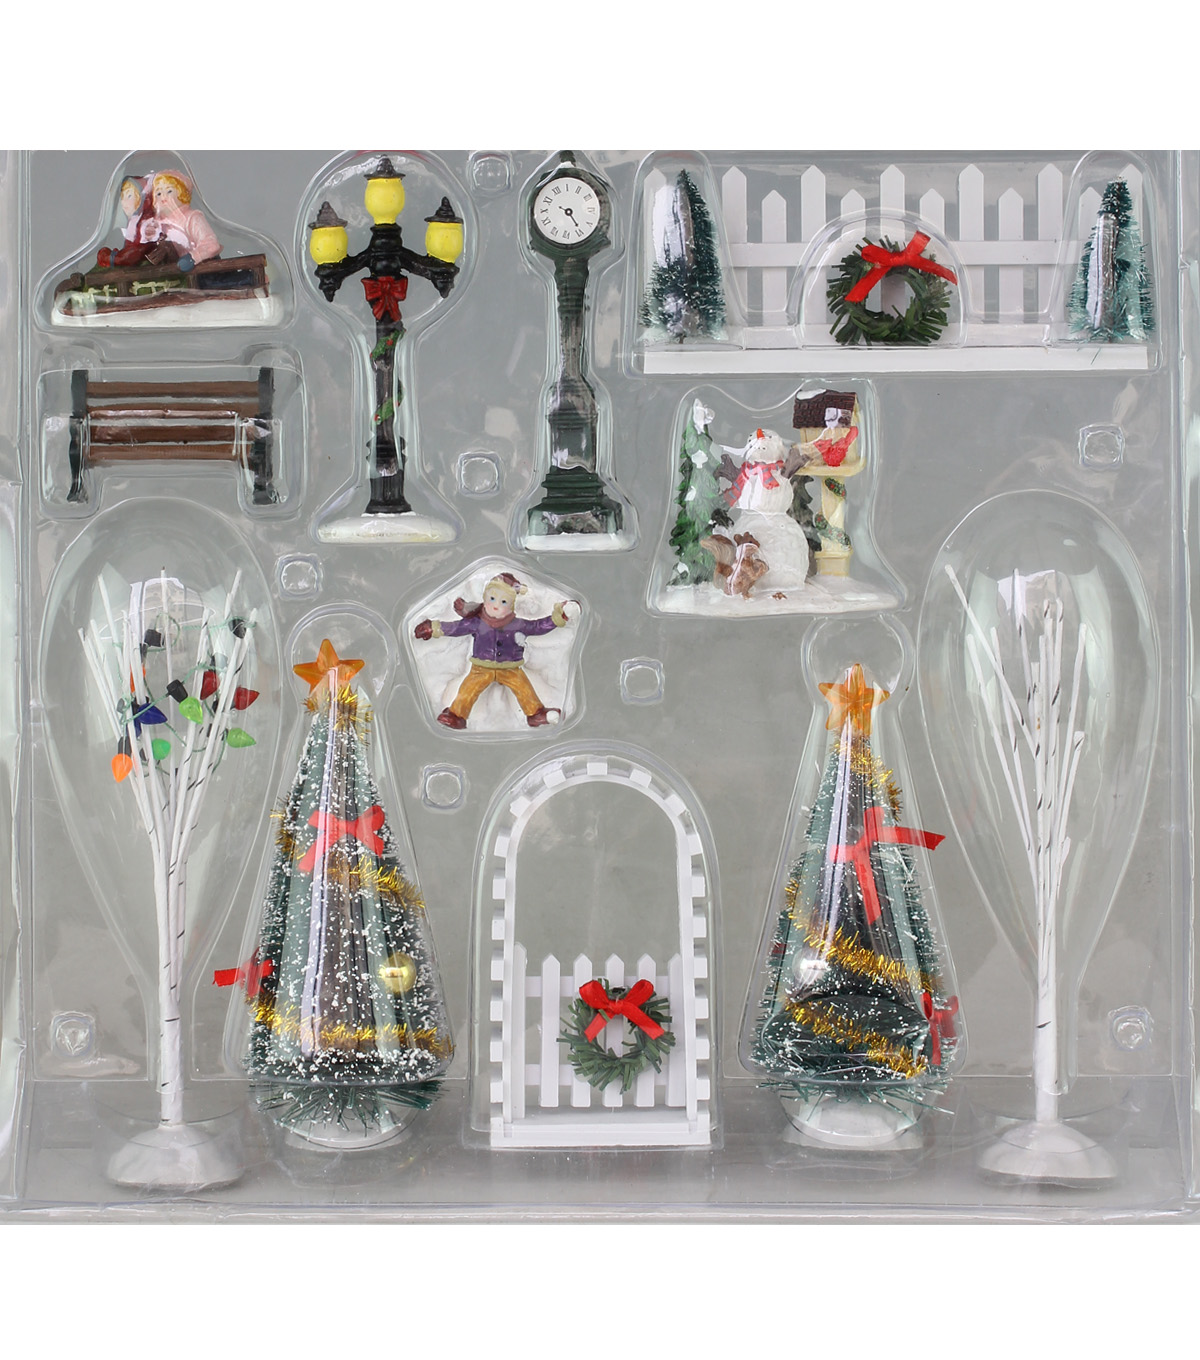 Holiday Inspirations Accessory Value Pack 2 Set of 12